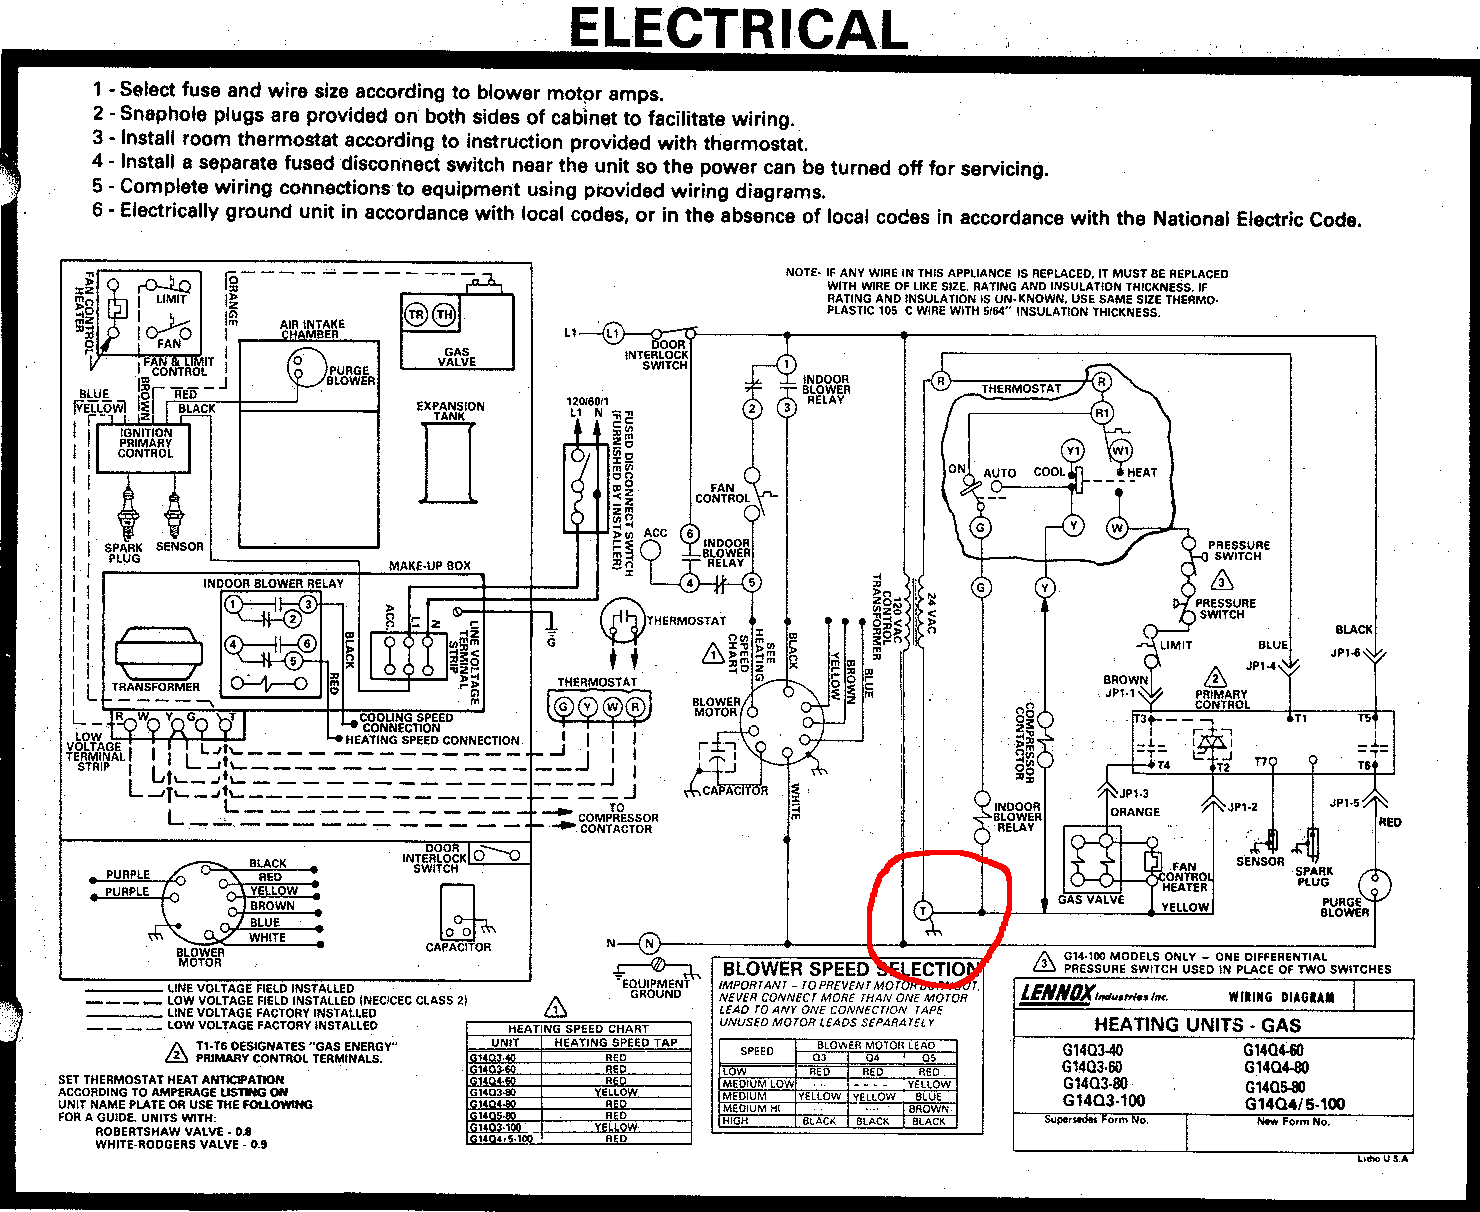 Oil Furnace Wiring Diagram For Nest | Wiring Diagram - Nest Wiring Diagram C